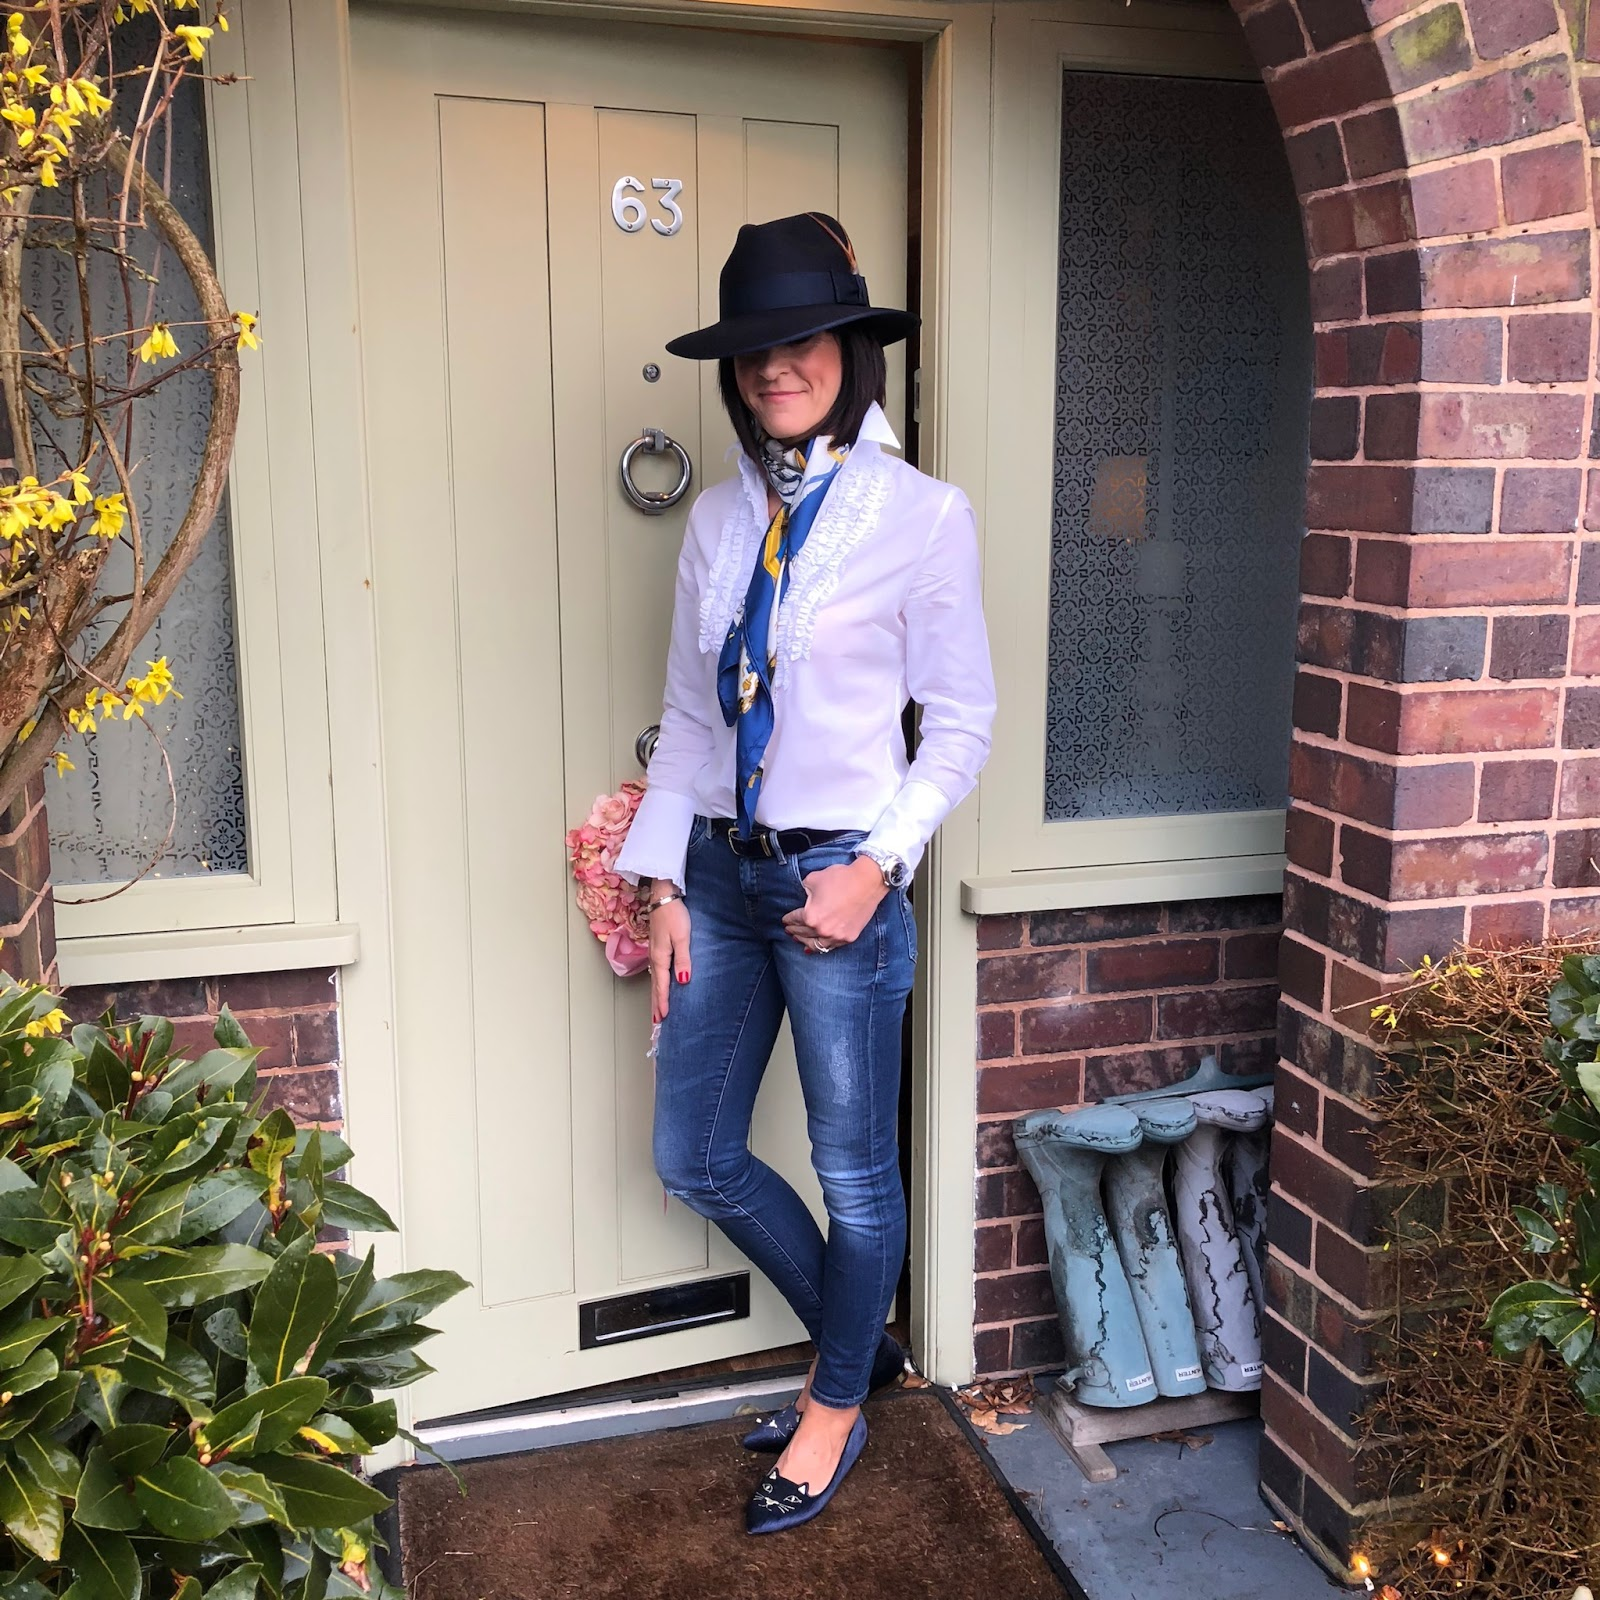 my midlife fashion, hawes and curtis madison felt fedora, hawes and curtis womens boutique white relaxed fit shirt with frill detailing, hermes silk scarf, j crew ponyskin leather belt, zara distressed skinny jeans, charlotte olympia kitty pointed flat shoes